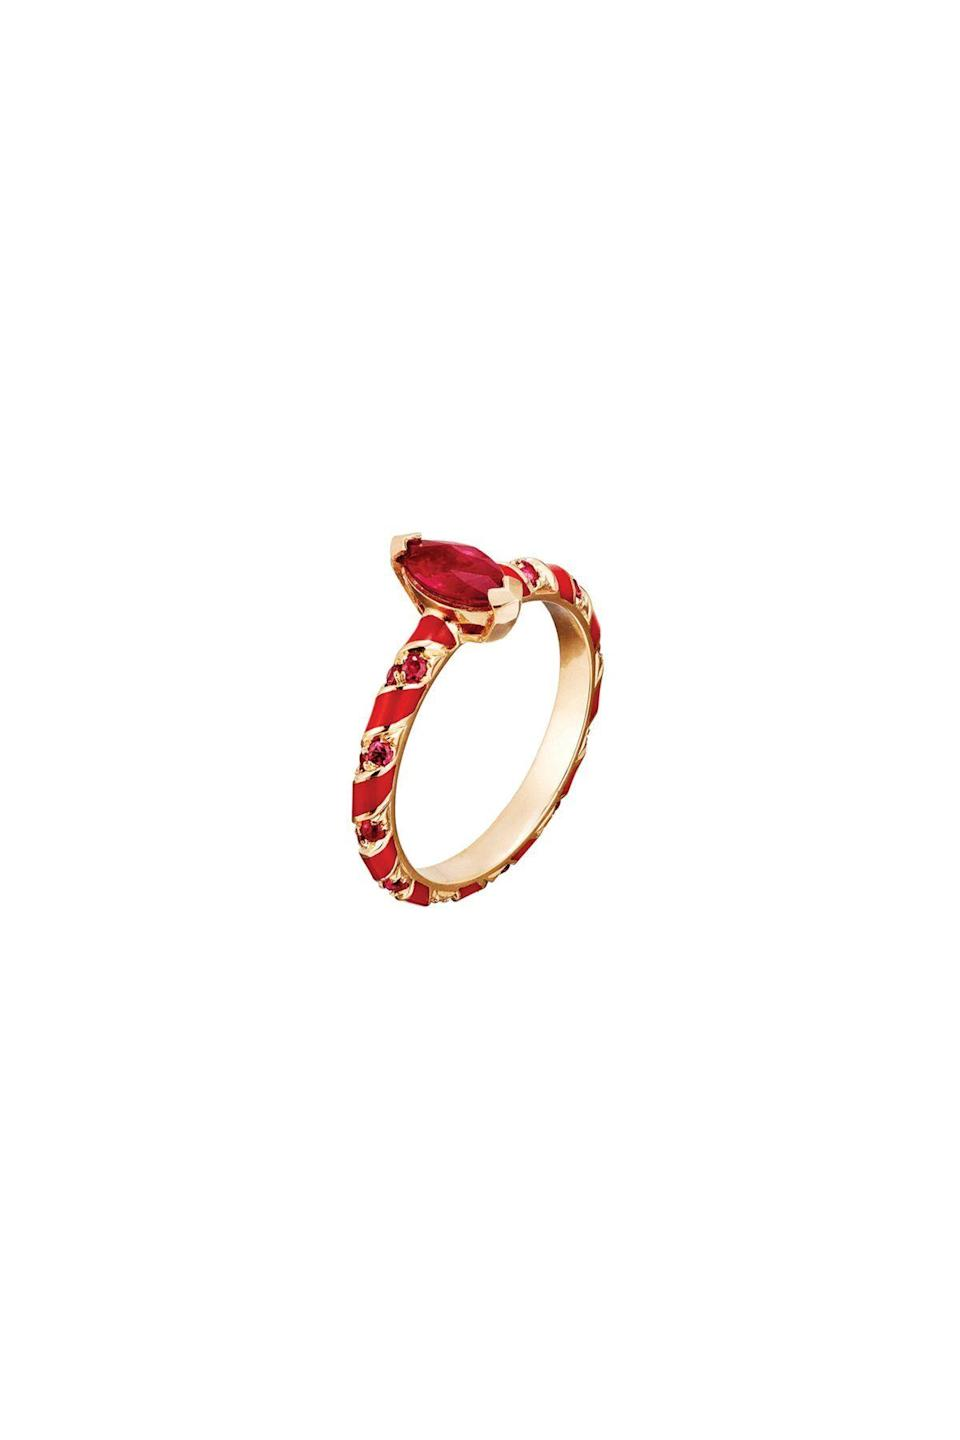 """<p><strong>Alice Cicolini</strong></p><p>objetdemotion.com</p><p><strong>$2693.00</strong></p><p><a href=""""https://objetdemotion.com/jewels/candy-pave-ring/"""" rel=""""nofollow noopener"""" target=""""_blank"""" data-ylk=""""slk:Shop Now"""" class=""""link rapid-noclick-resp"""">Shop Now</a></p><p>All of Alice Cicolini's jewels are handmade in India by Jaipuri meenakari trained in the centuries-old enamel traditions of Persia. Fun, playful designs are her signature (see: this ring). Just be warned—her pieces, like candy, are also irresistibly collectible.</p>"""